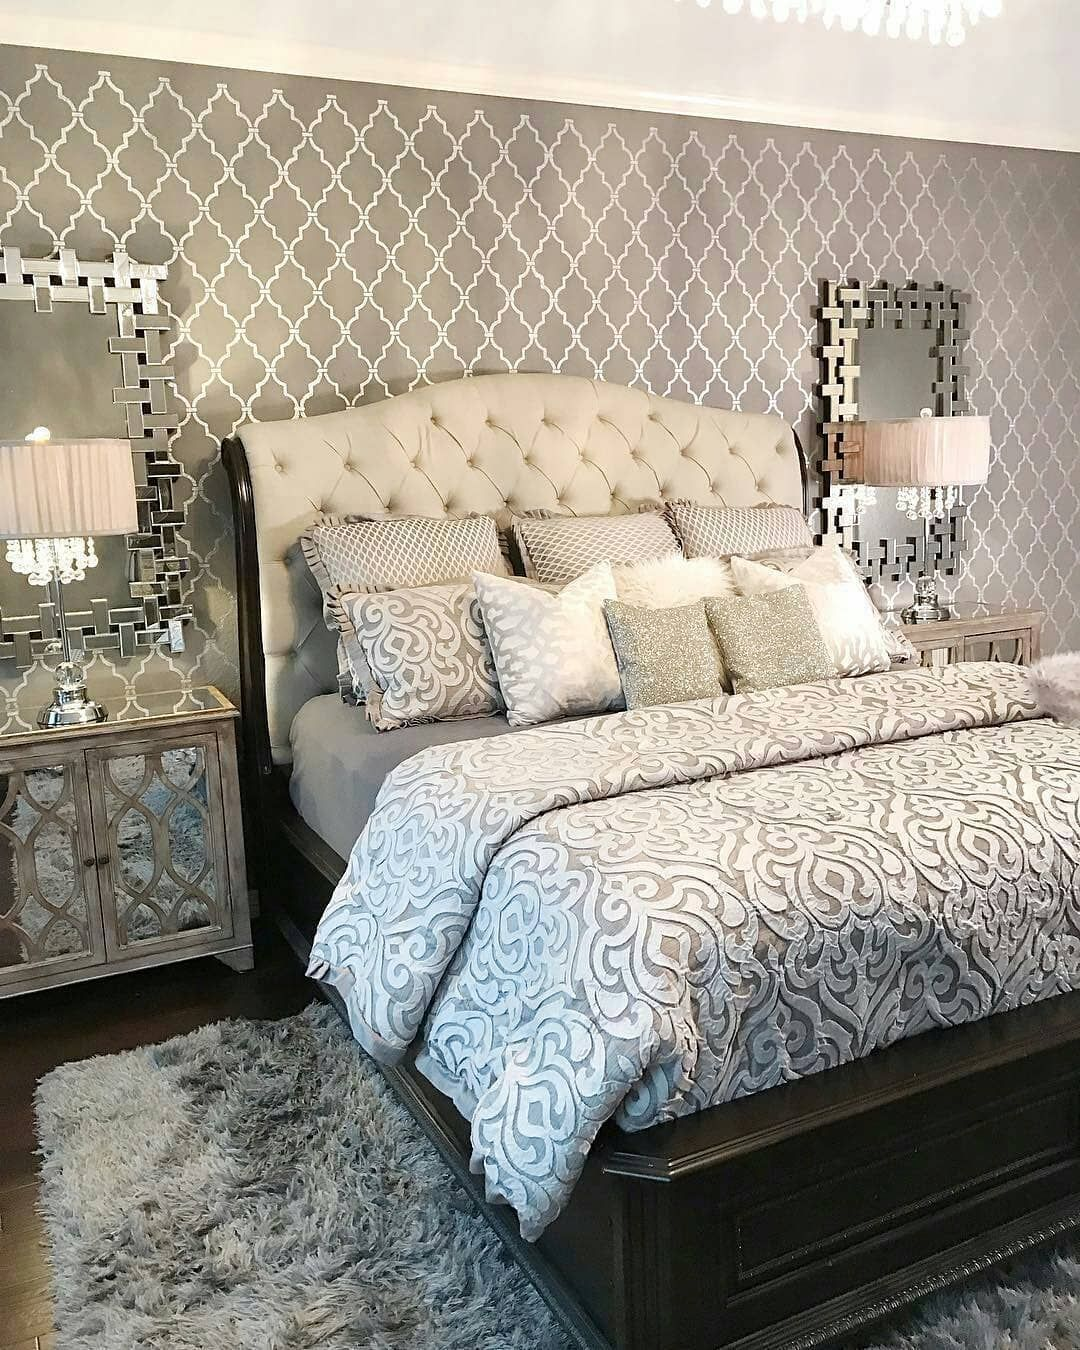 Prime Residence Decor On Instagram The Room Is Well Dressed